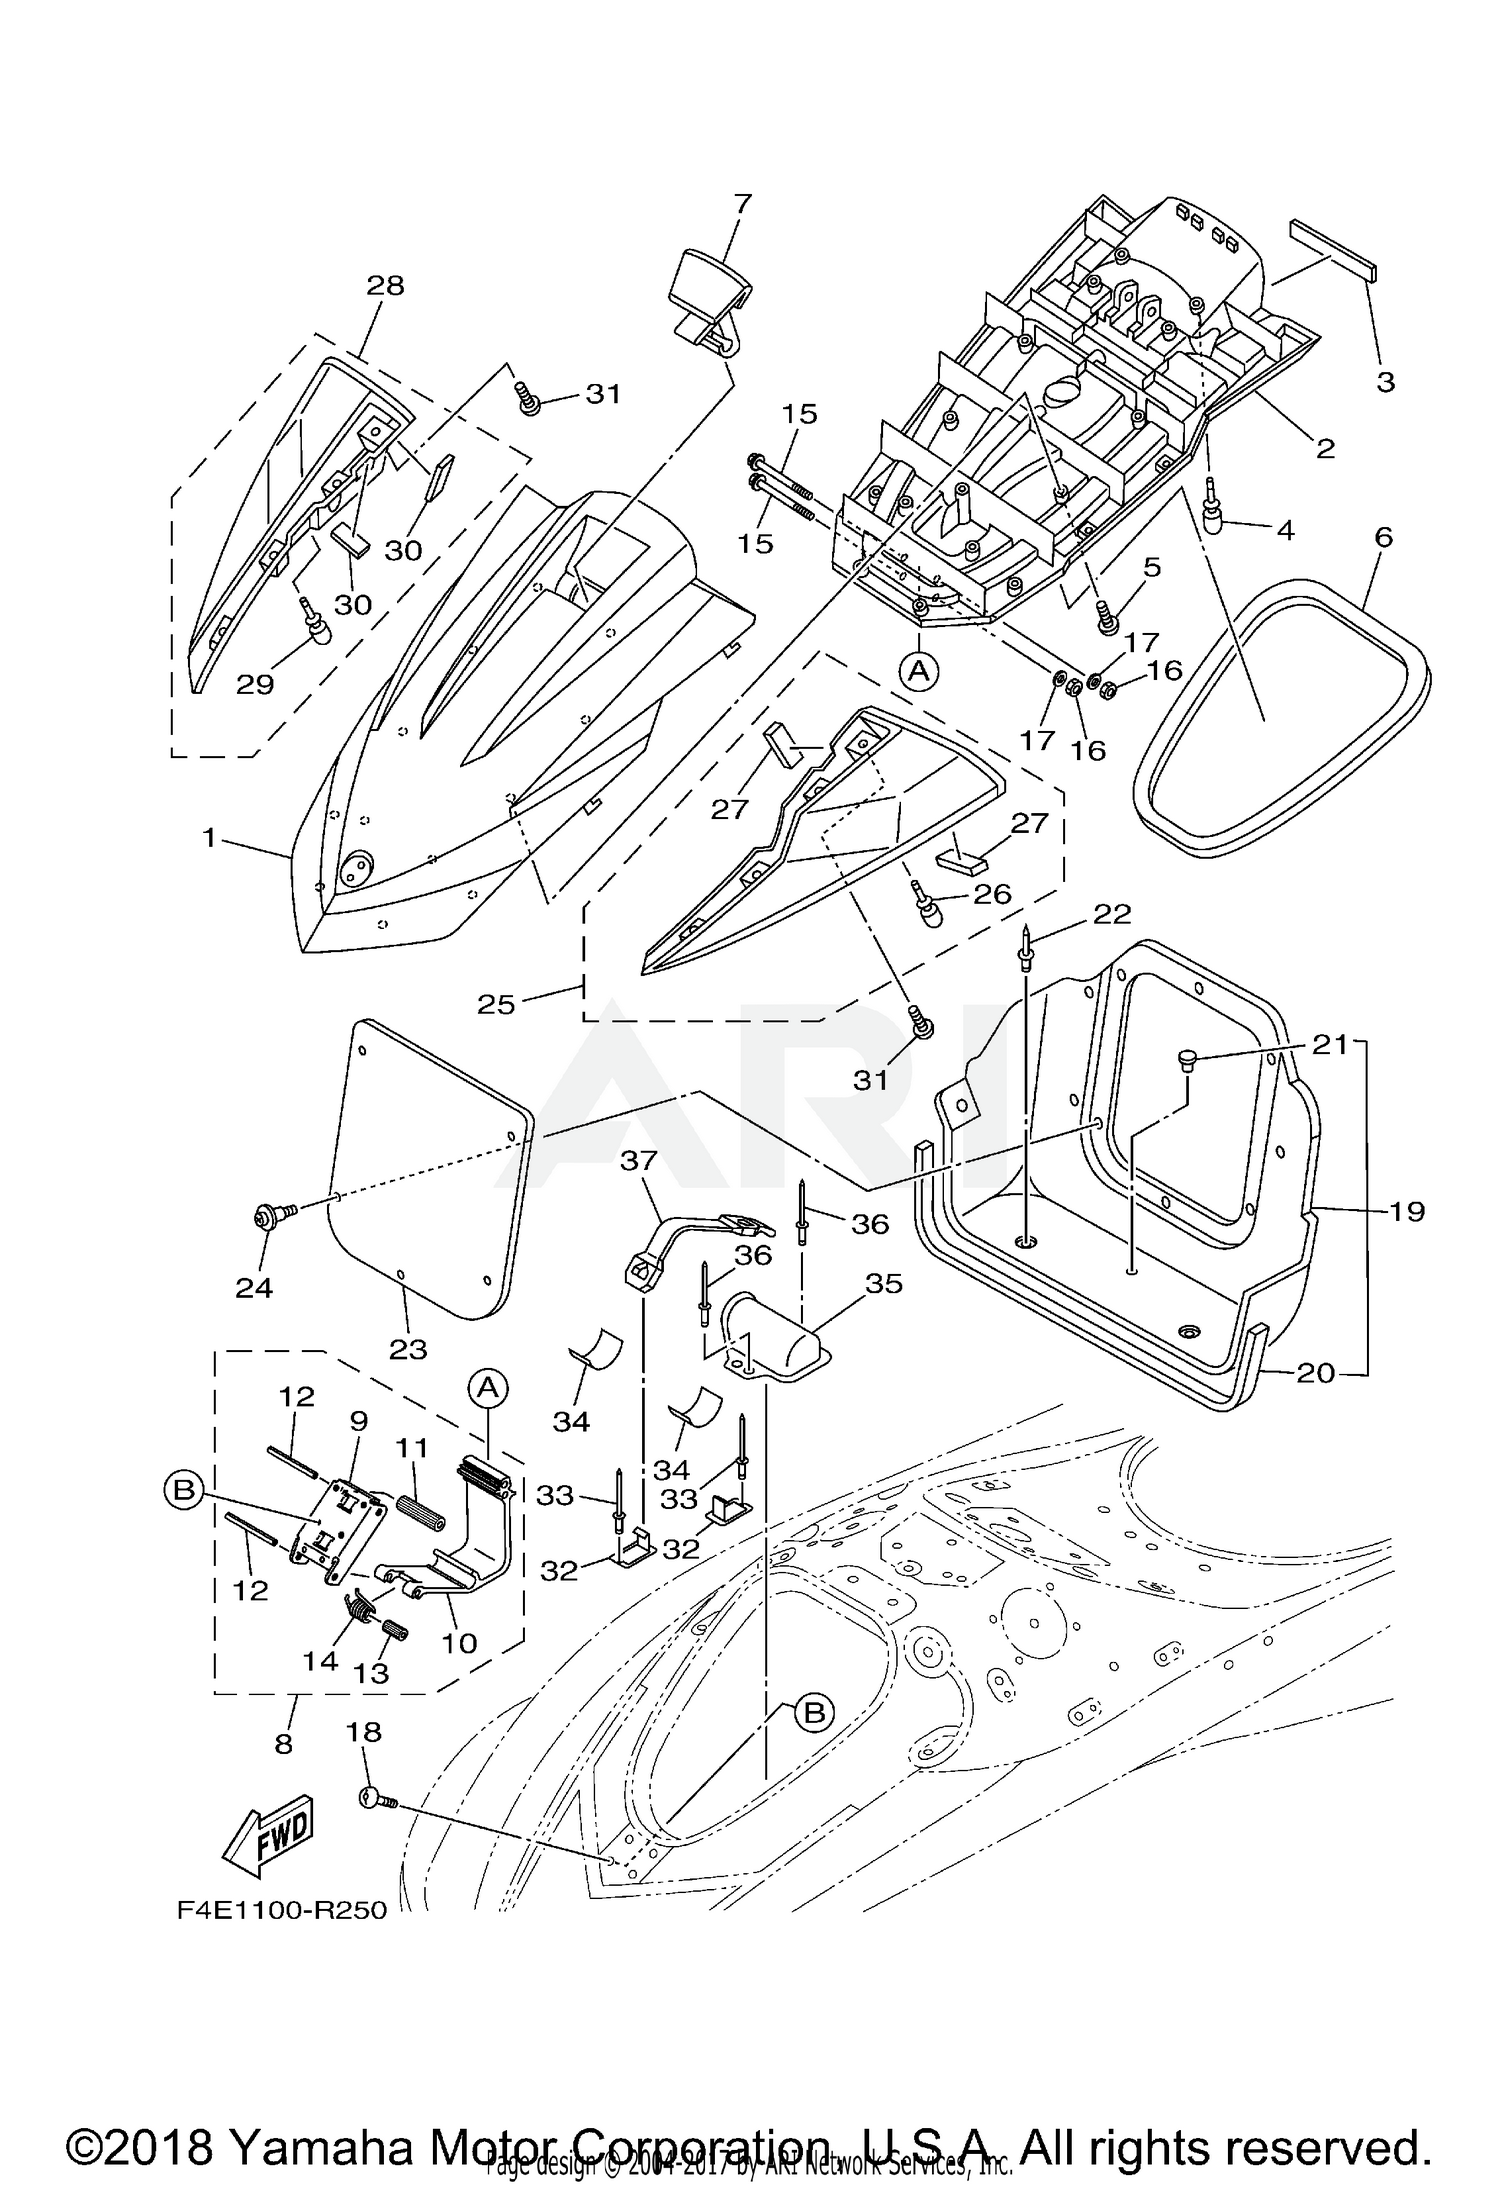 hight resolution of schematic search results 0 parts in 0 schematics